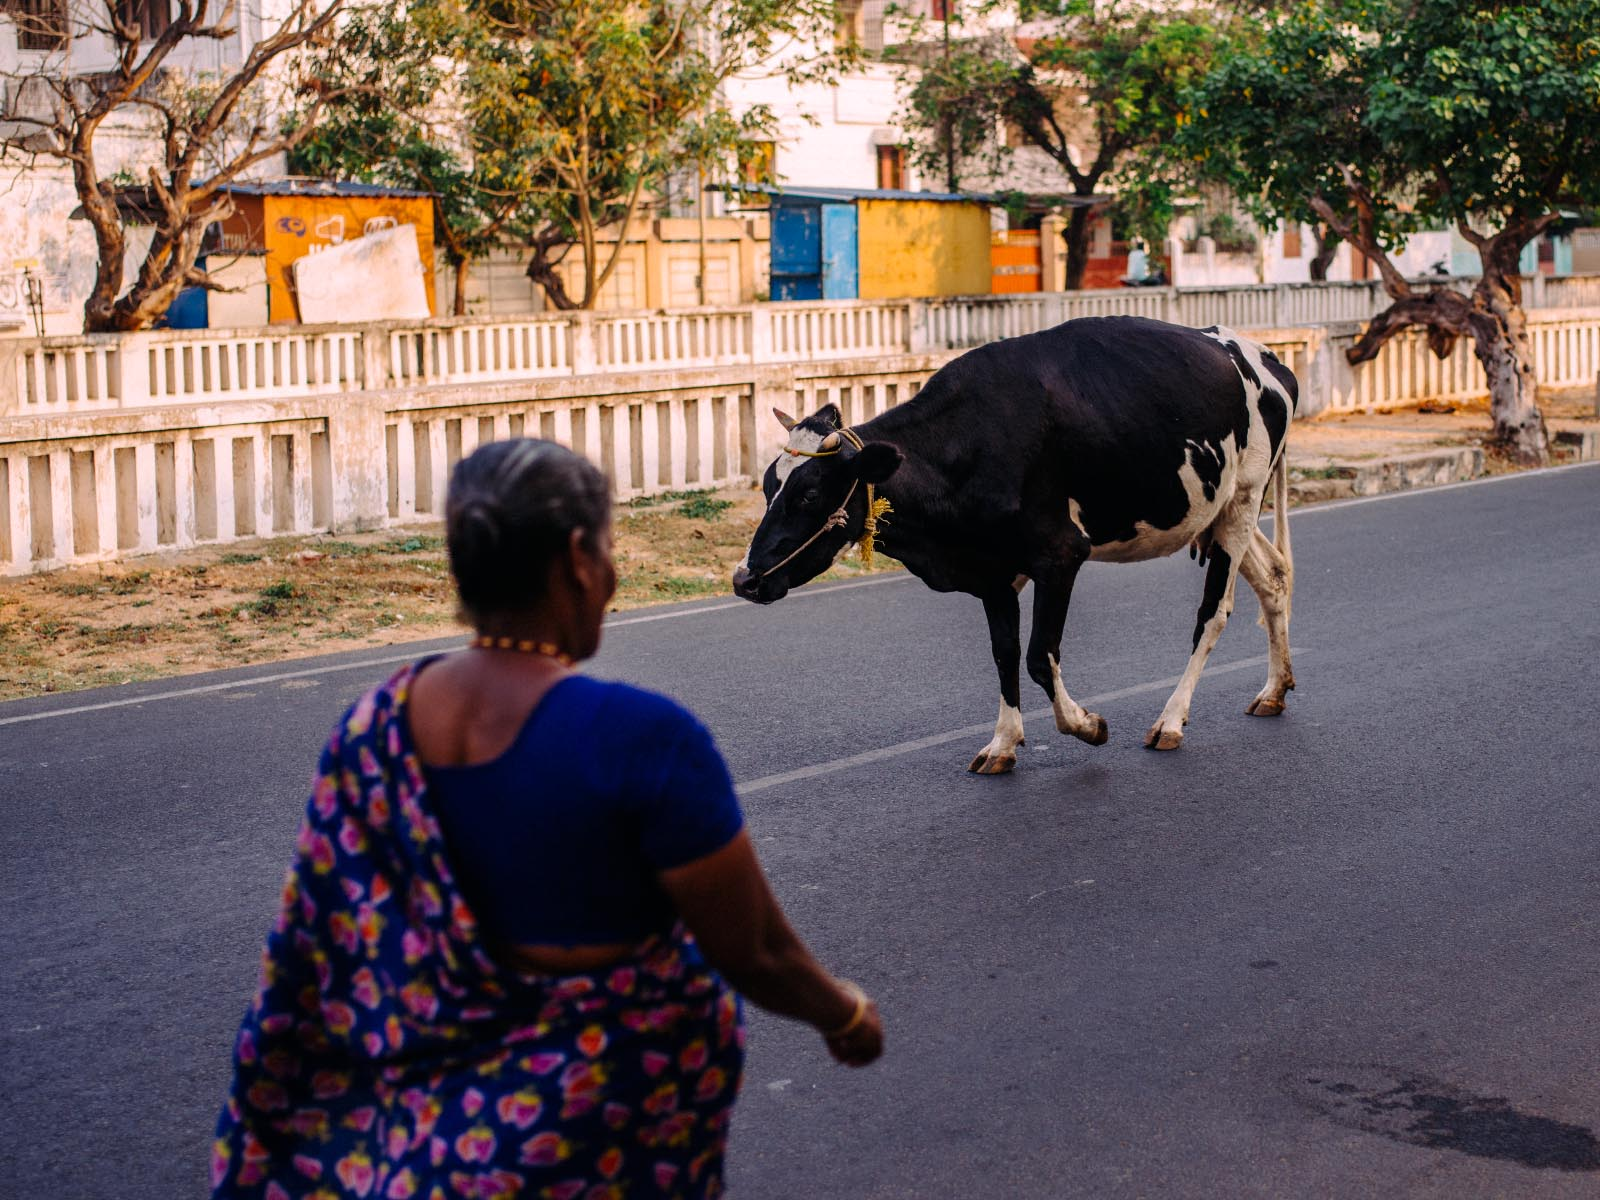 India travel photography? You're going to shoot a lot of cows!